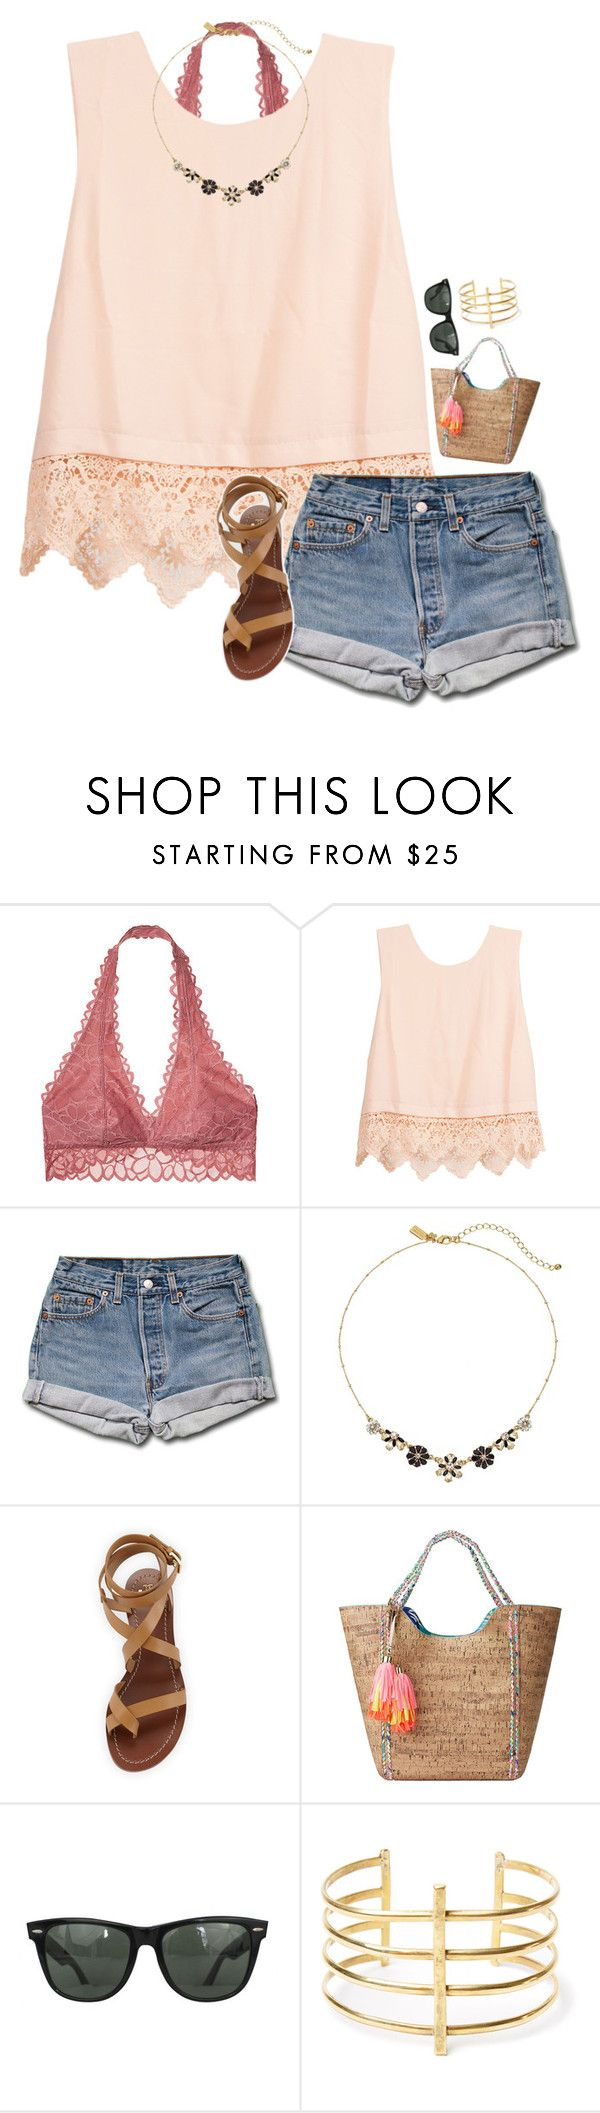 """Days like this I want to drive awa-ay"" by sanddollars on Polyvore featuring Victoria's Secret, Lush Clothing, Kate Spade, Tory Burch, Lilly Pulitzer, Ray-Ban and BauXo"